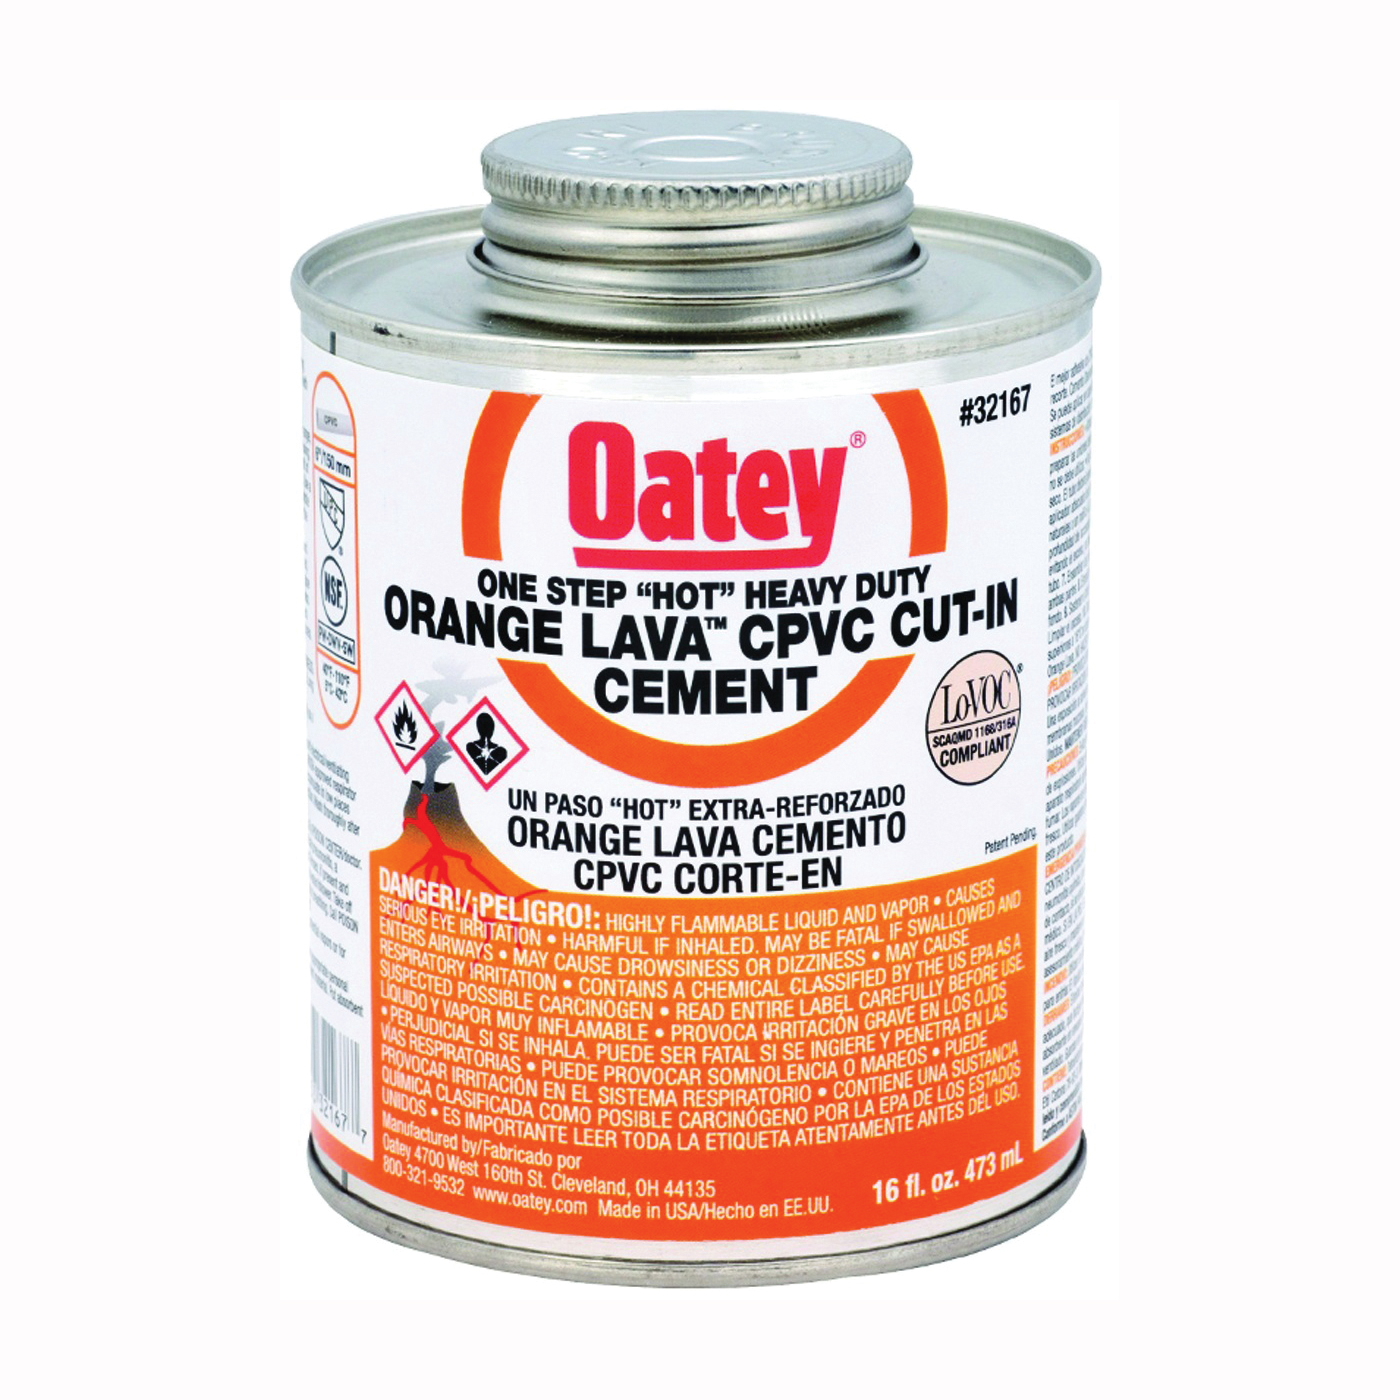 Picture of Oatey 32167 Solvent Cement, 16 oz, Can, Liquid, Orange